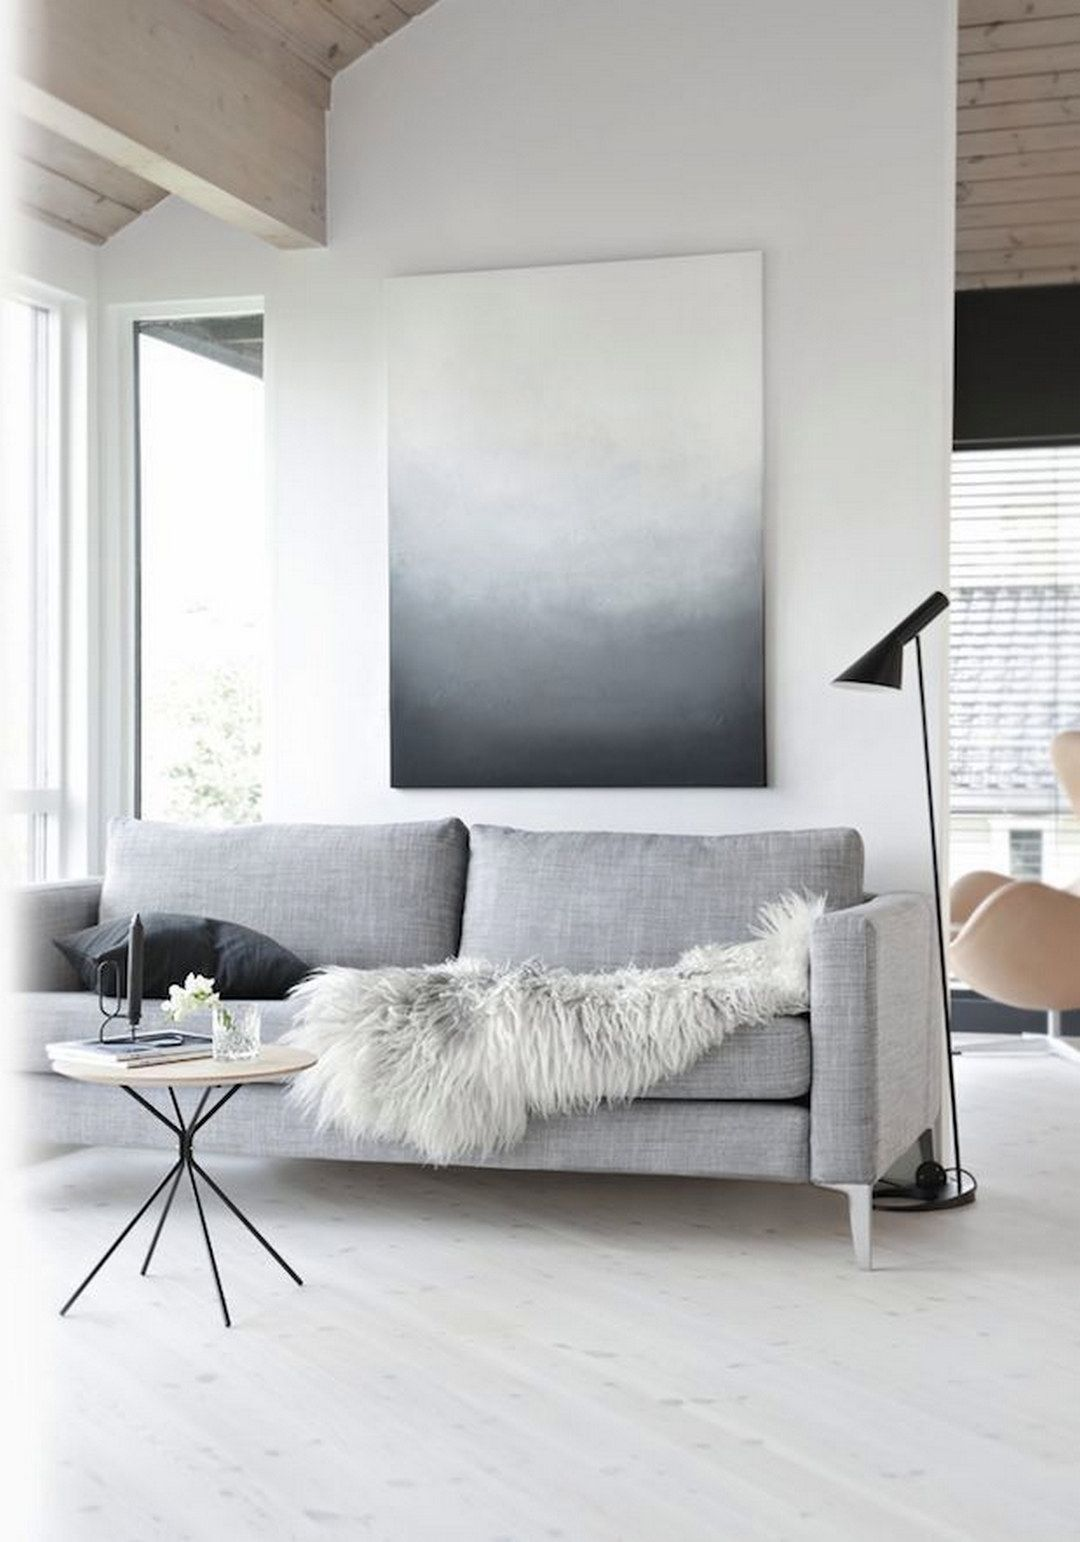 Minimalist Home Decor 99 Fantastic Minimalist Home Decor Ideas  Minimalist Living